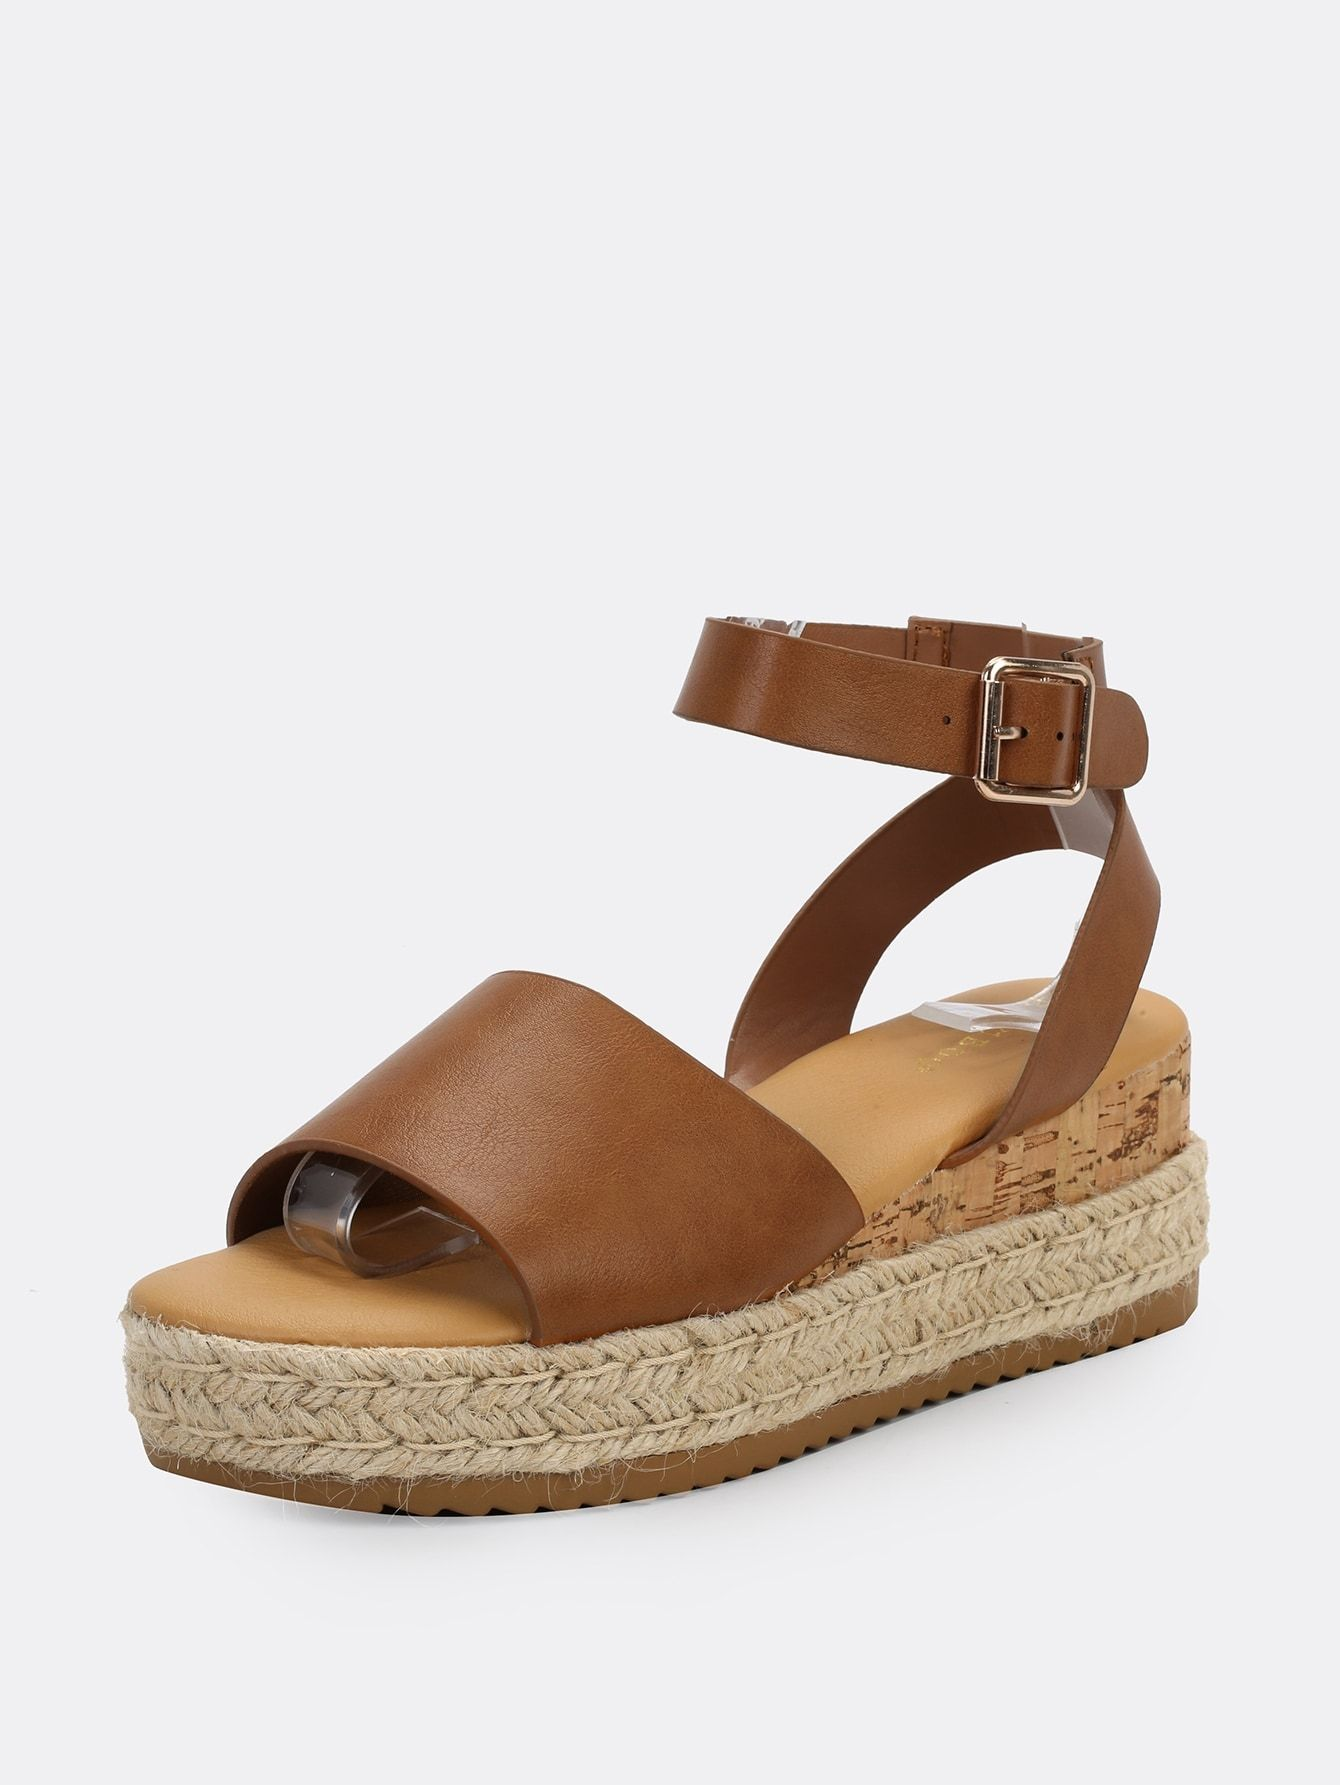 Ad: Single Band Buckled Ankle Jute Low Wedge Sandals. Tags: Buckle, Rubber, Tan, Faux Leather, Mid Heel, Open Toe, Platform, Ankle strap, Espadrille, Boho #fashion #womenfashion #womenclothes #shein #lowwedgesandals Ad: Single Band Buckled Ankle Jute Low Wedge Sandals. Tags: Buckle, Rubber, Tan, Faux Leather, Mid Heel, Open Toe, Platform, Ankle strap, Espadrille, Boho #fashion #womenfashion #womenclothes #shein #lowwedgesandals